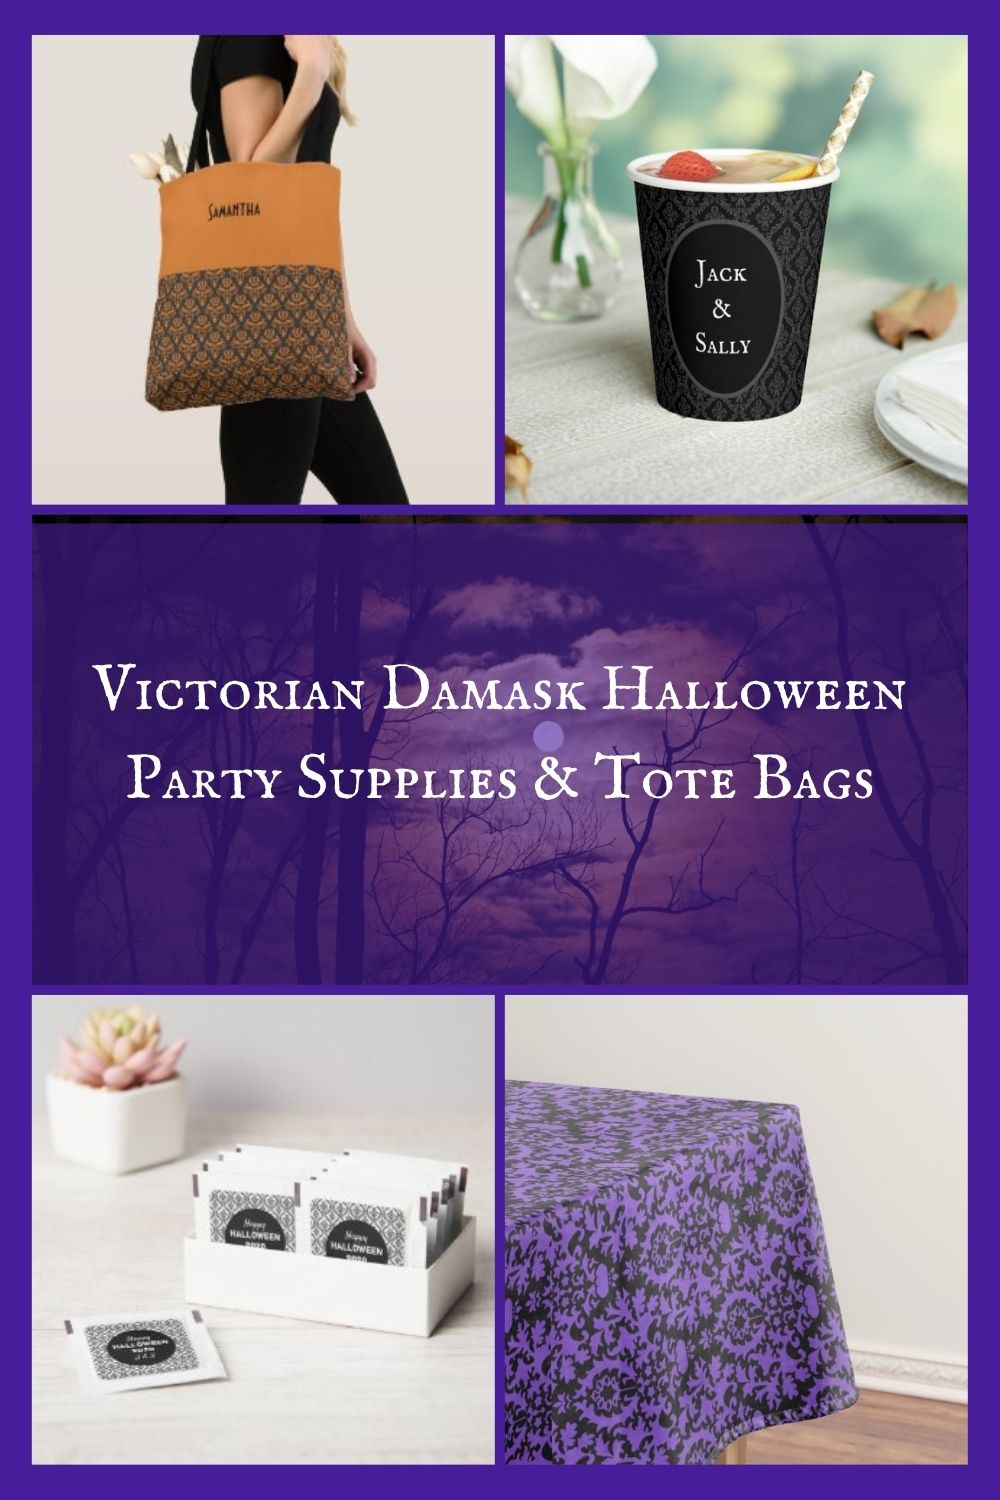 Victorian Damask Halloween Party Supplies & Tote Bags